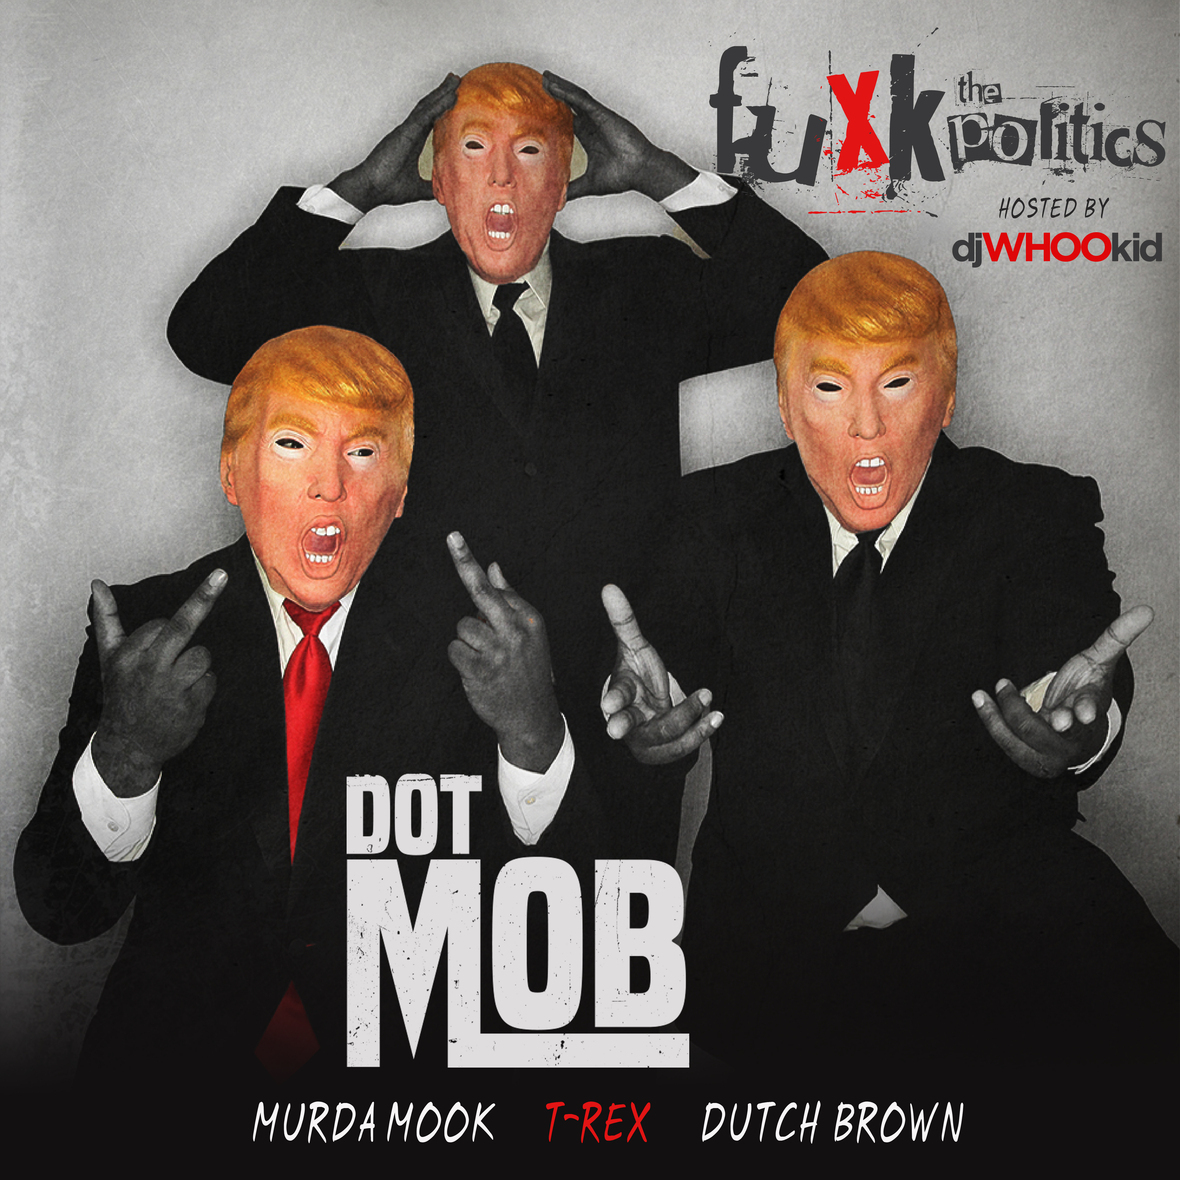 DotMob Fuxk The Politics Art